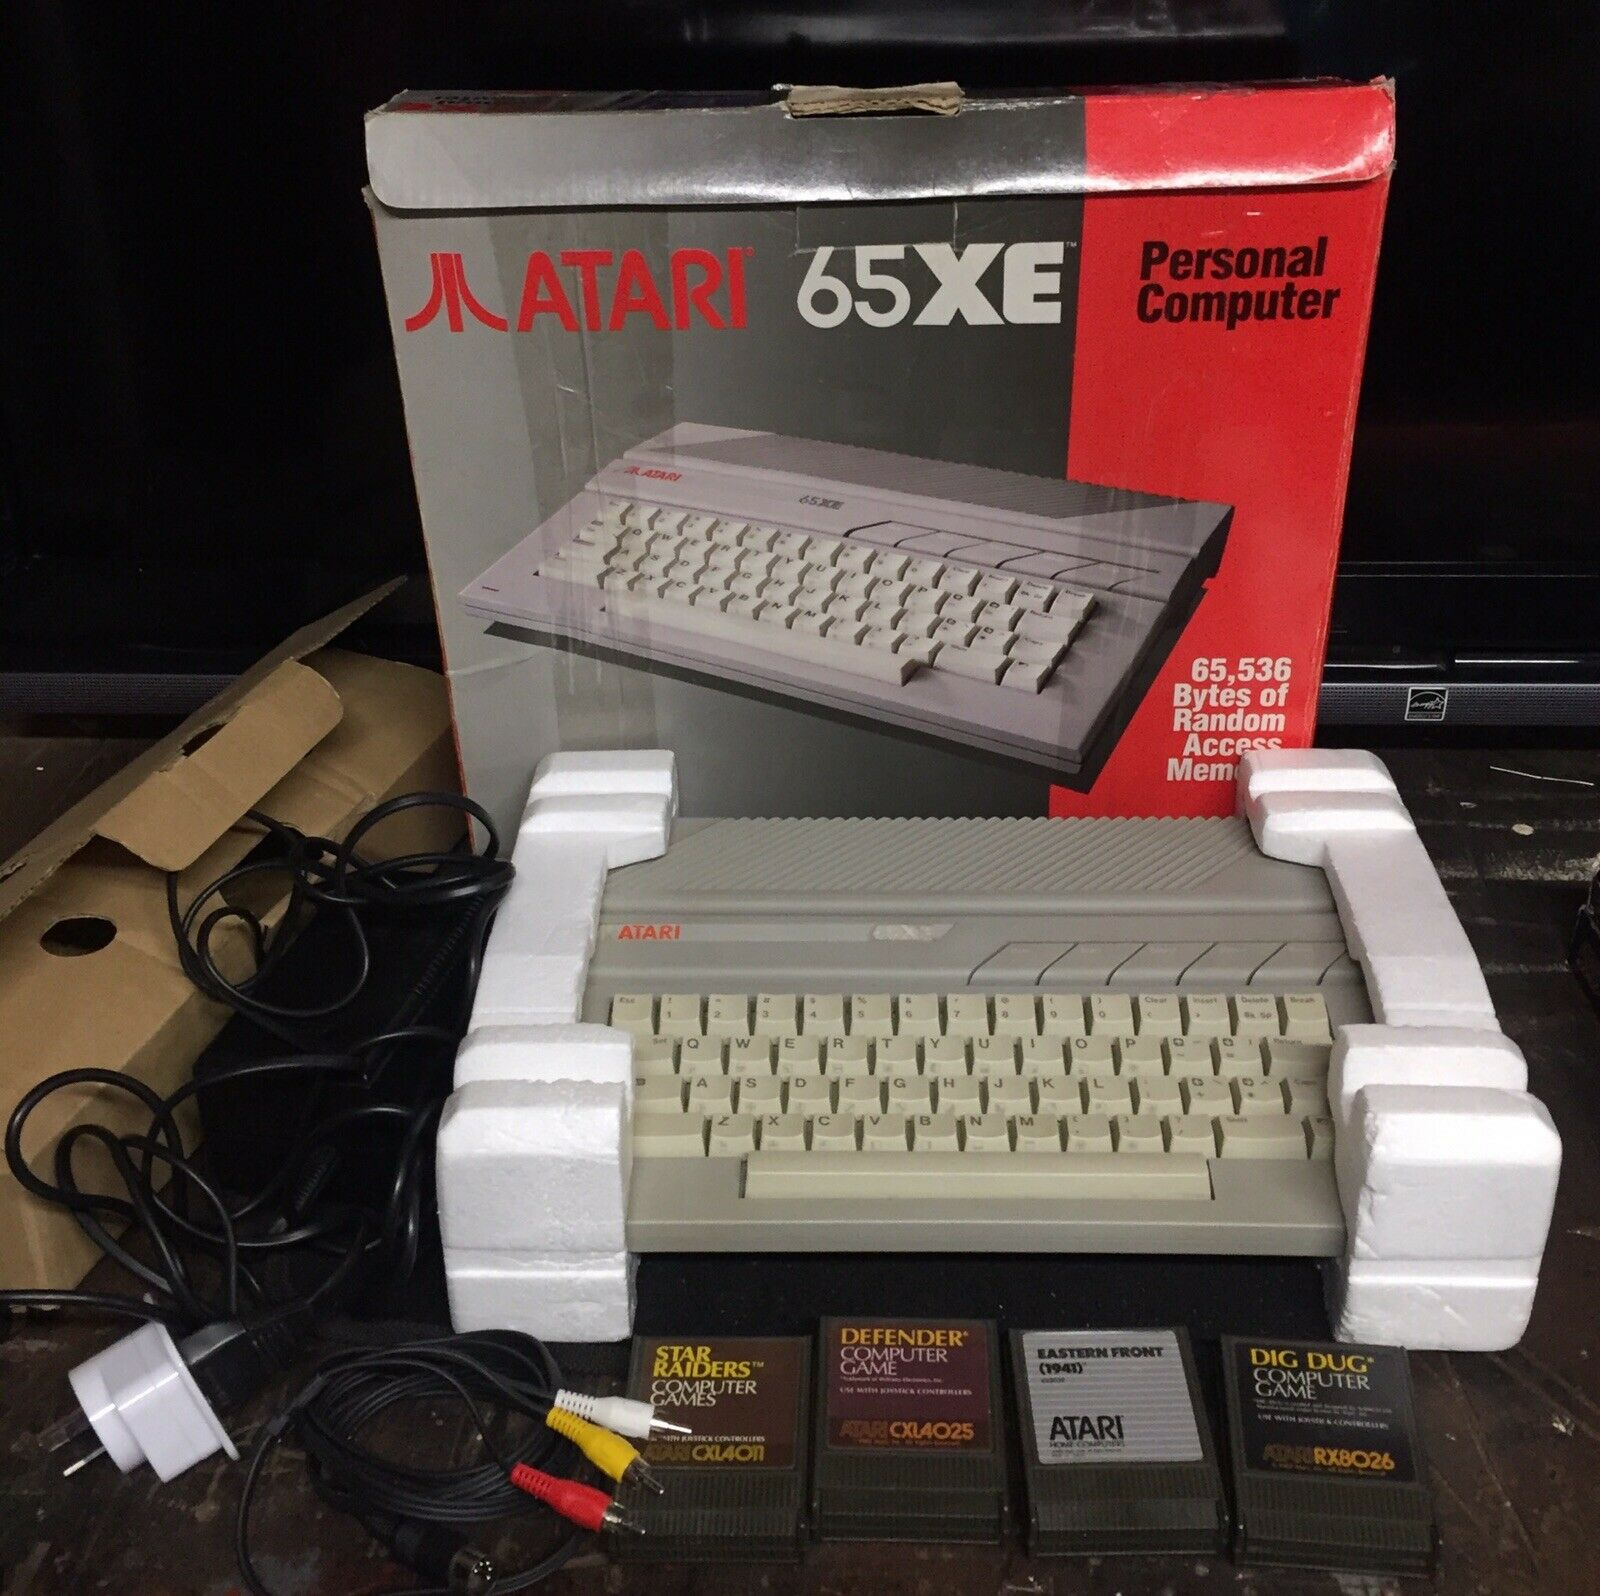 Computer Games - Atari 65XE Computer boxed + AV games Dig Dug Defender Star Raiders 400 XE XL 800